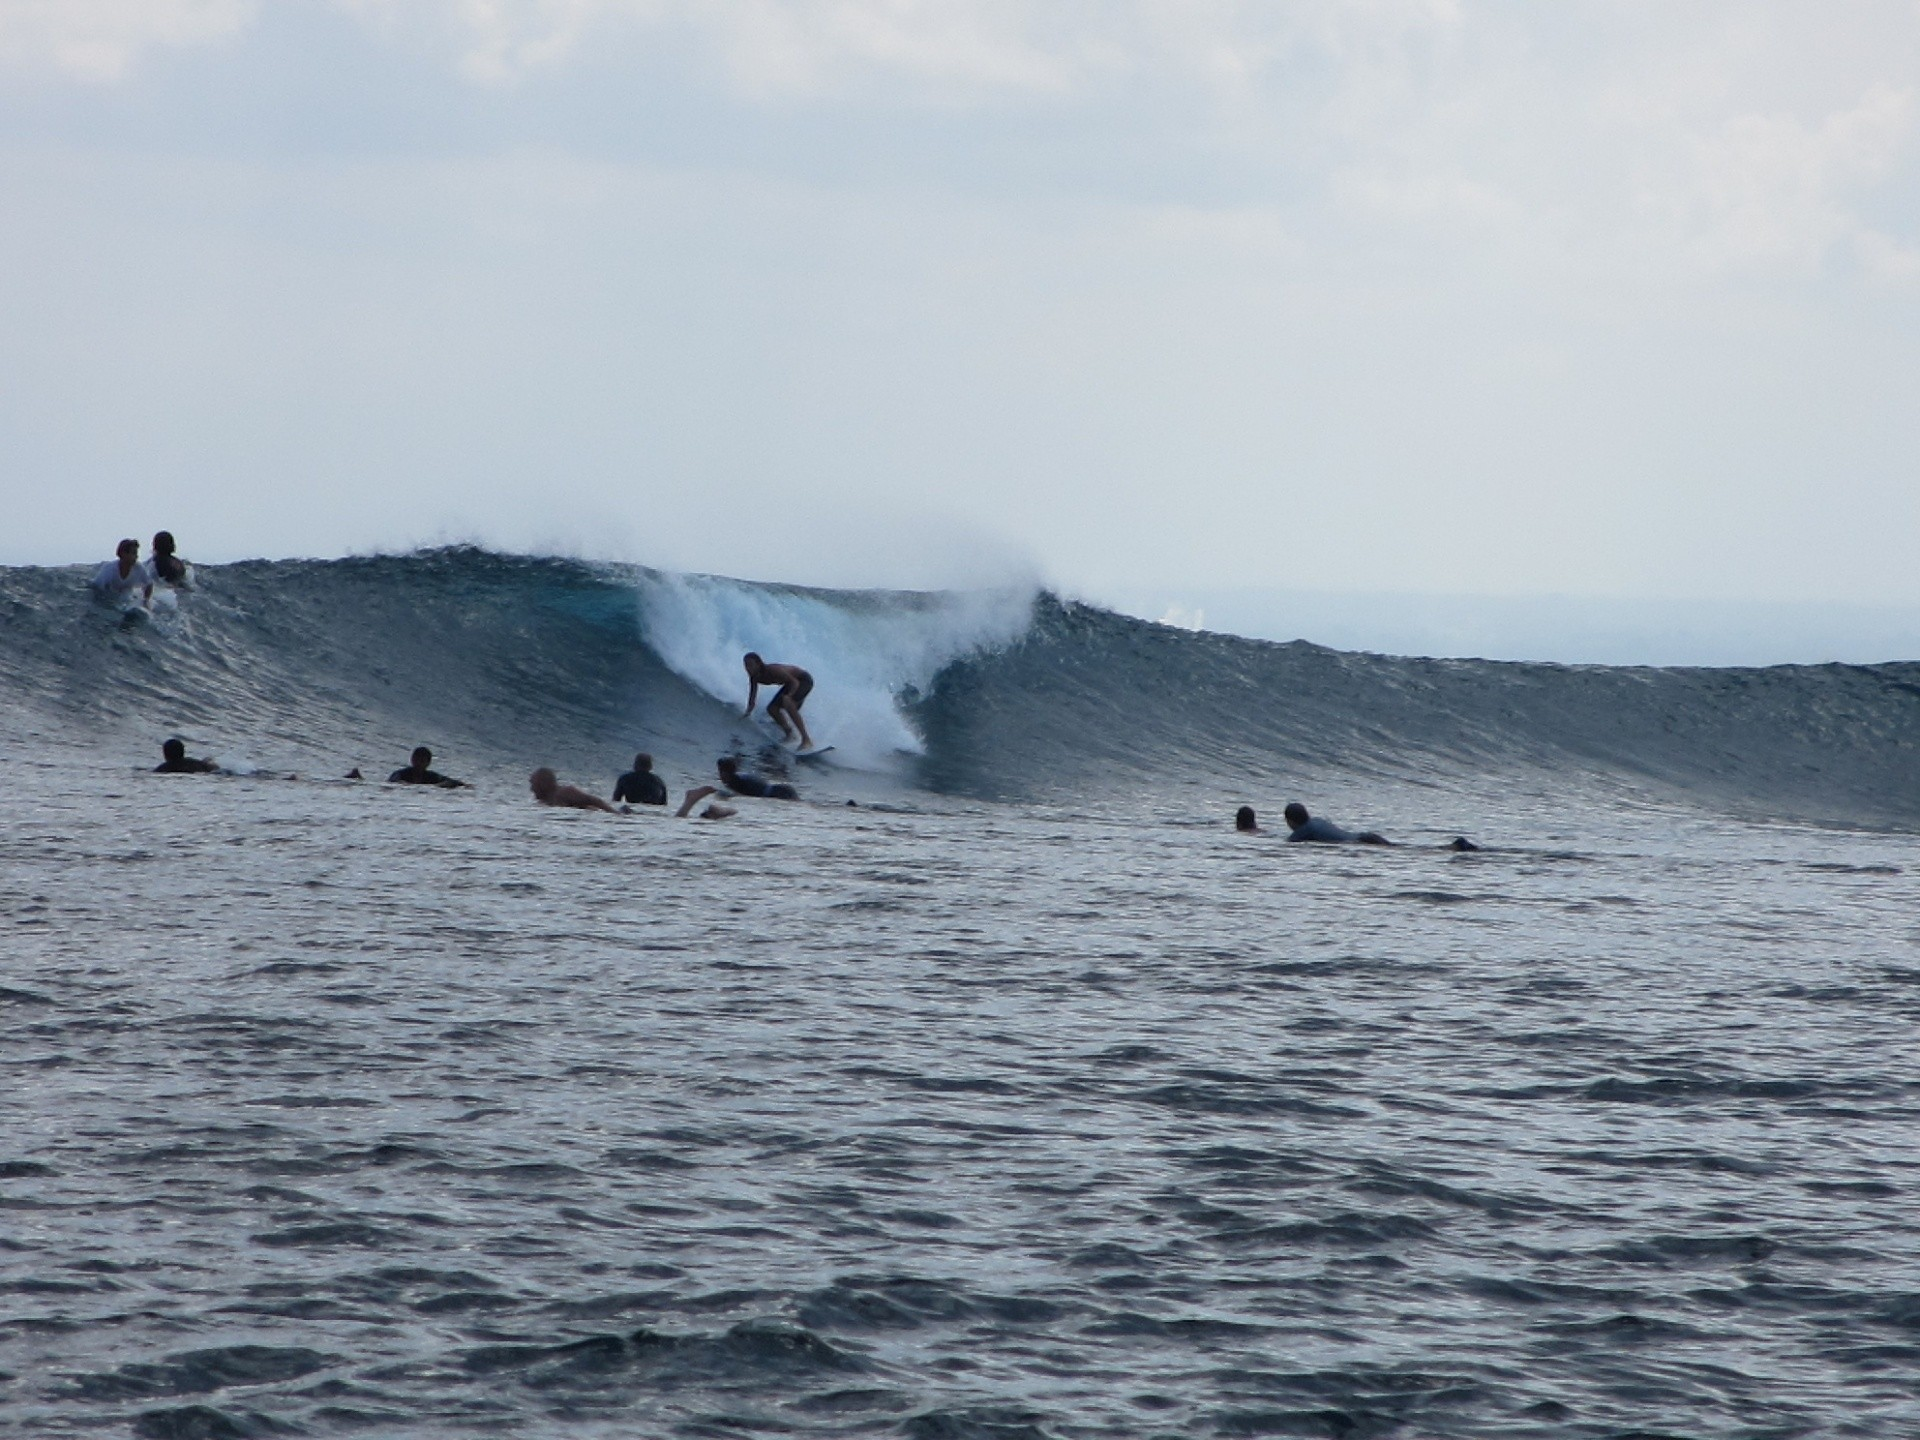 Bart Slingerland's photo of Shipwrecks - Lembongan